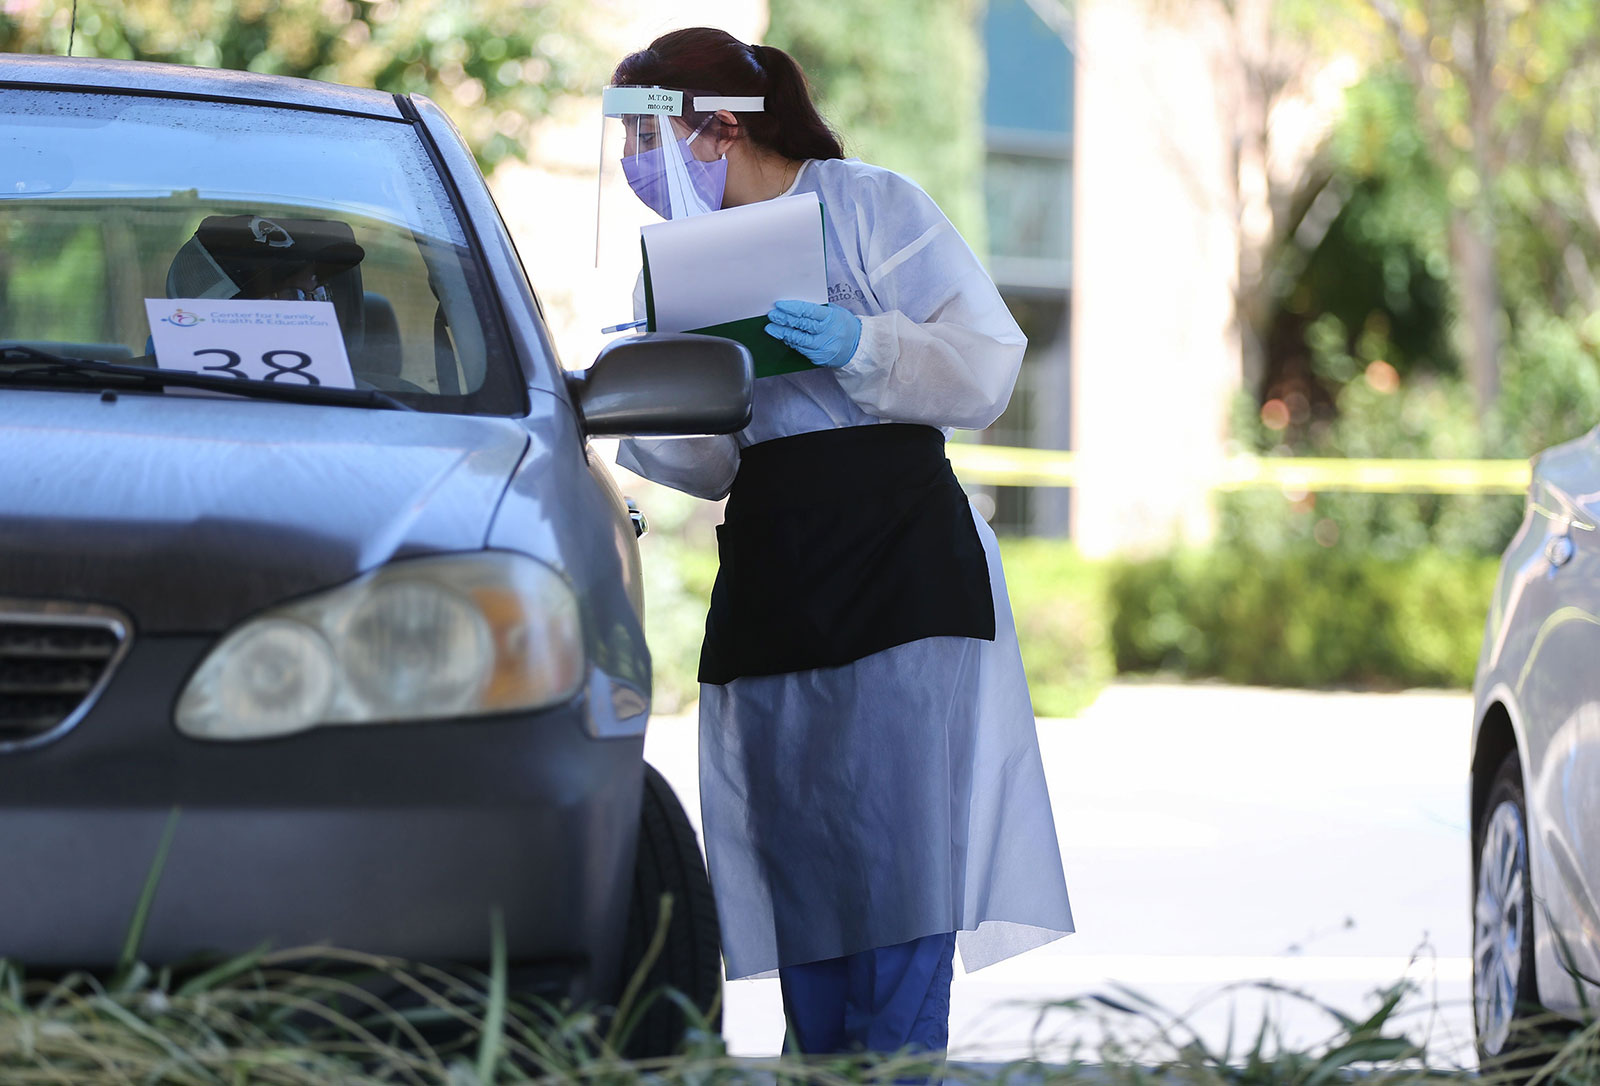 A healthcare worker gathers information from a person at a drive-in coronavirus testing center in Los Angeles on August 11.